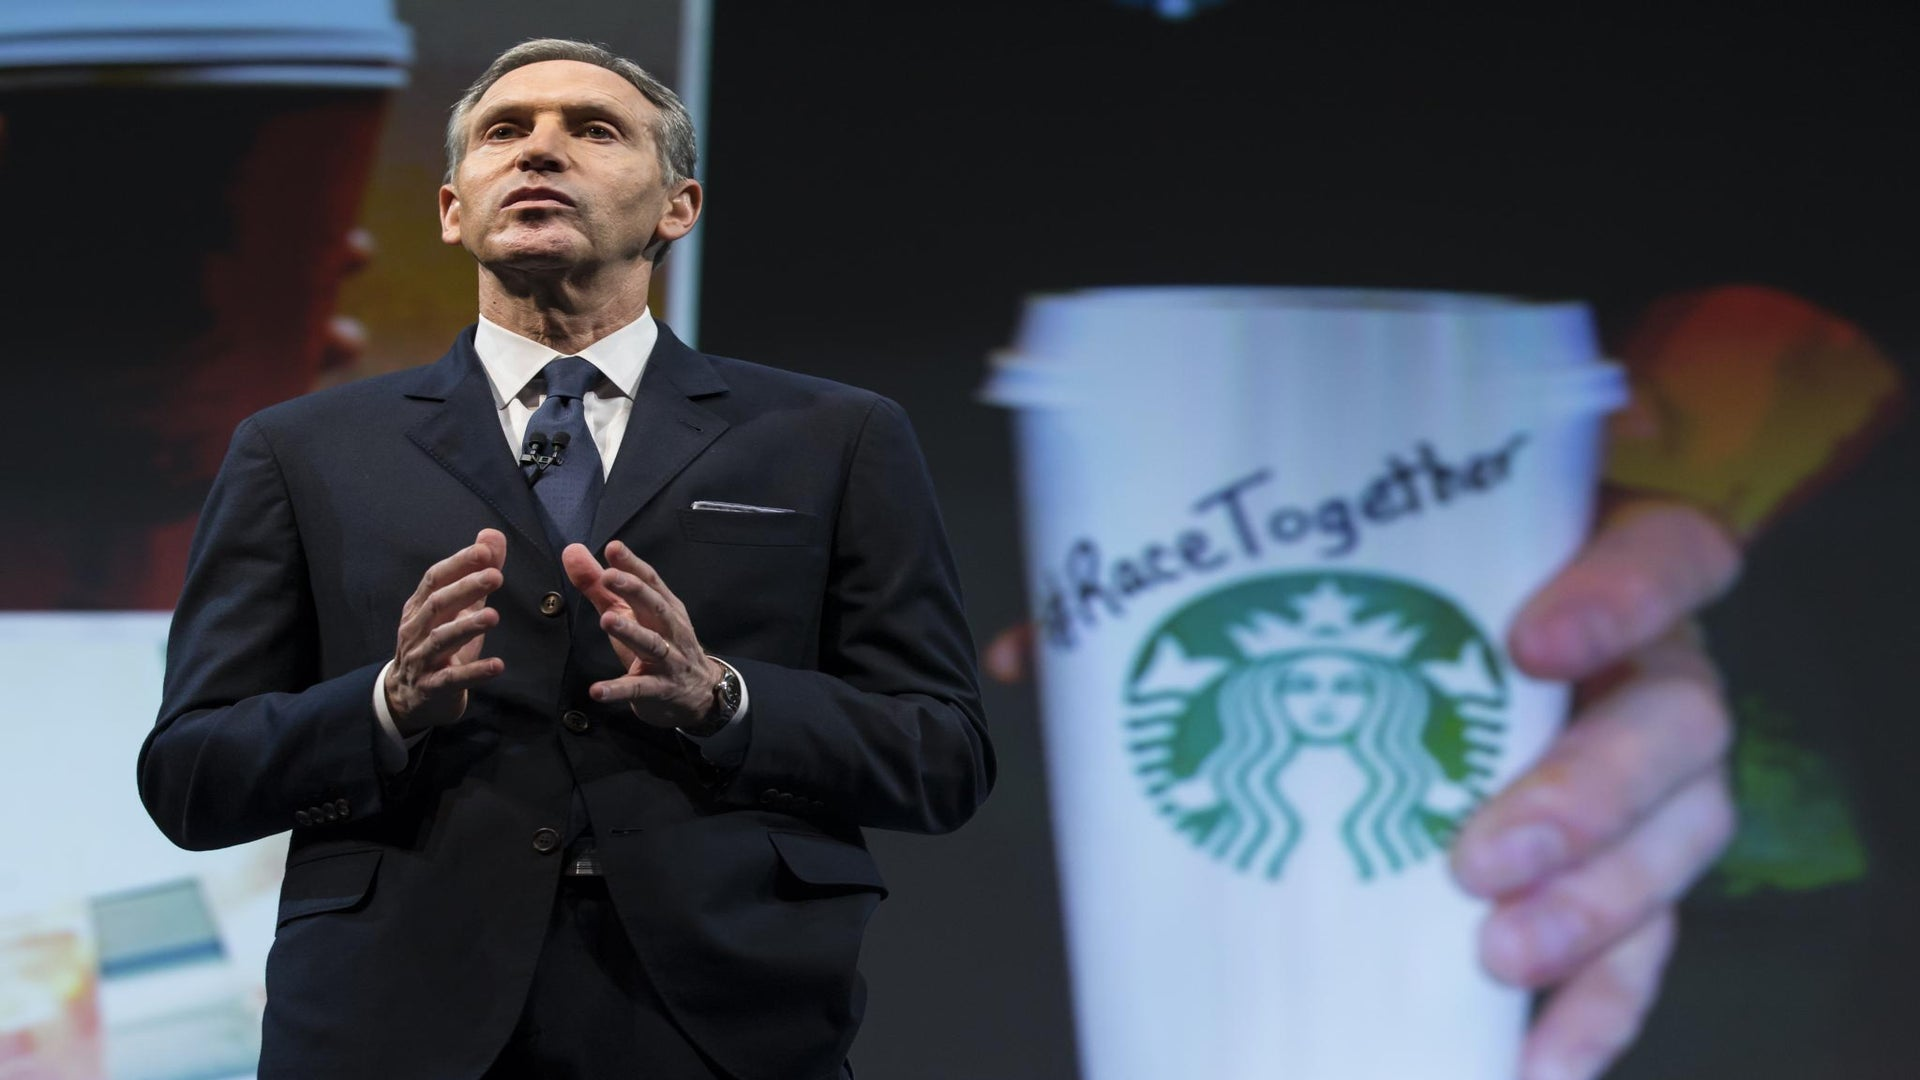 ESSENCE Poll: What Did You Think About Starbucks' 'Race Together' Campaign?